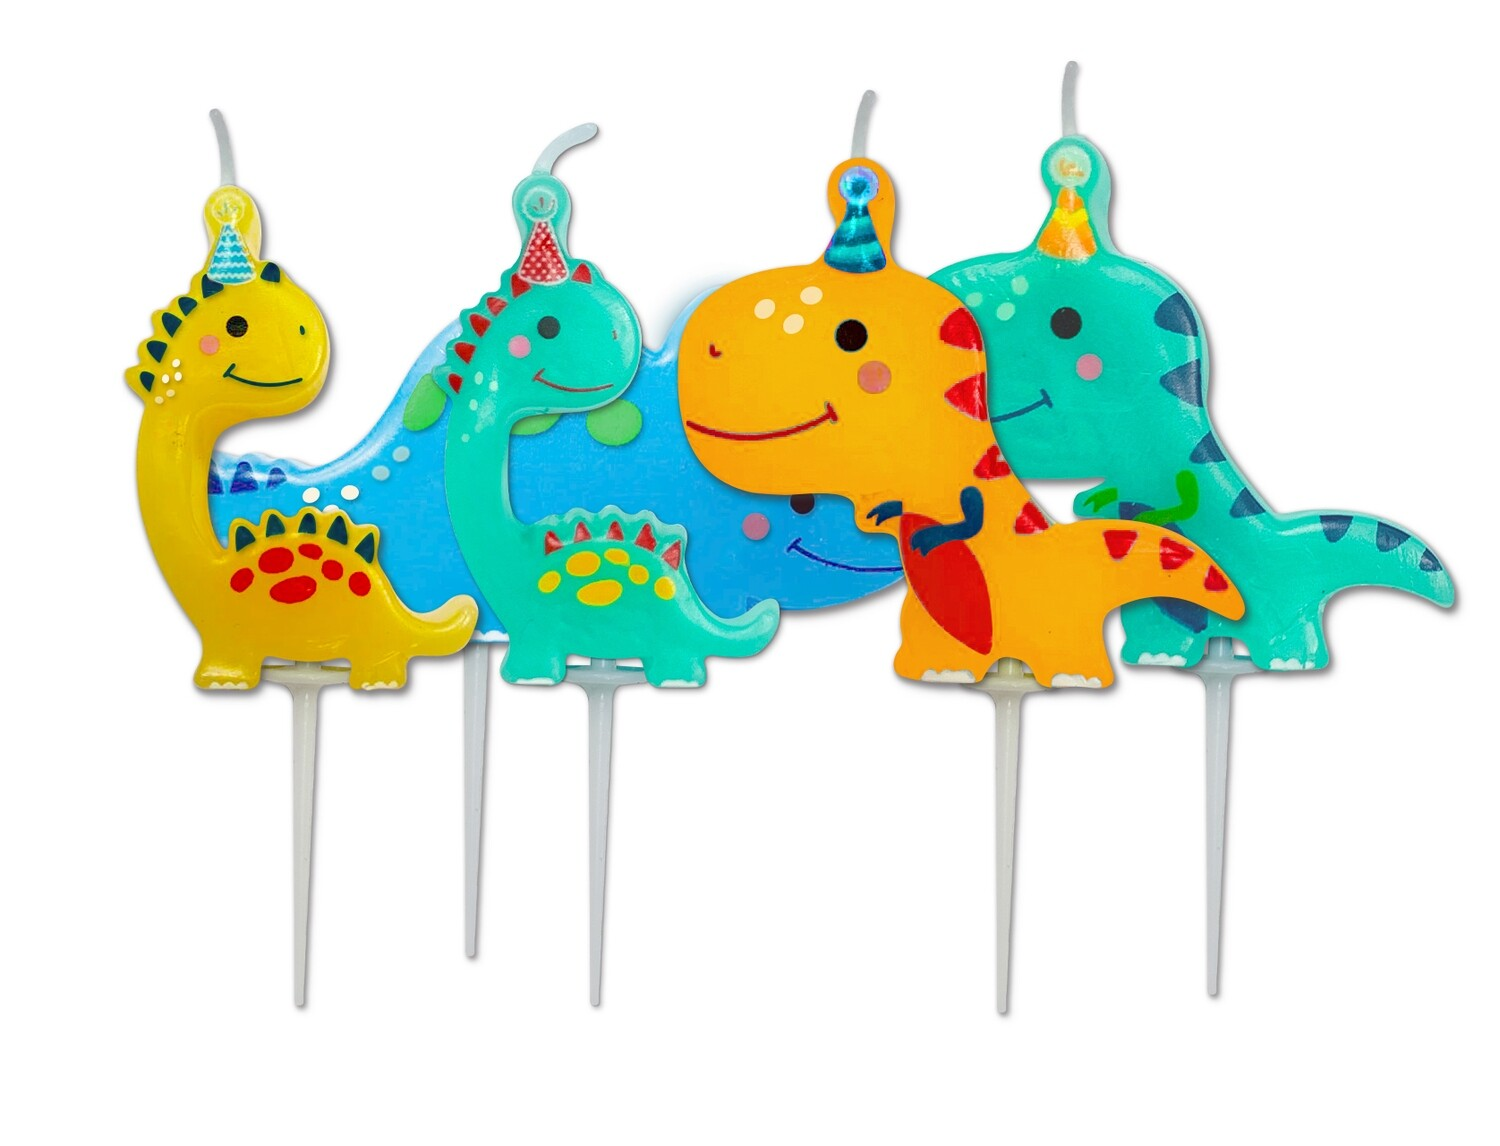 By AH -Candles -DINO PARTY Set of 5 - Κεράκια Δεινόσαυροι 5 τεμ